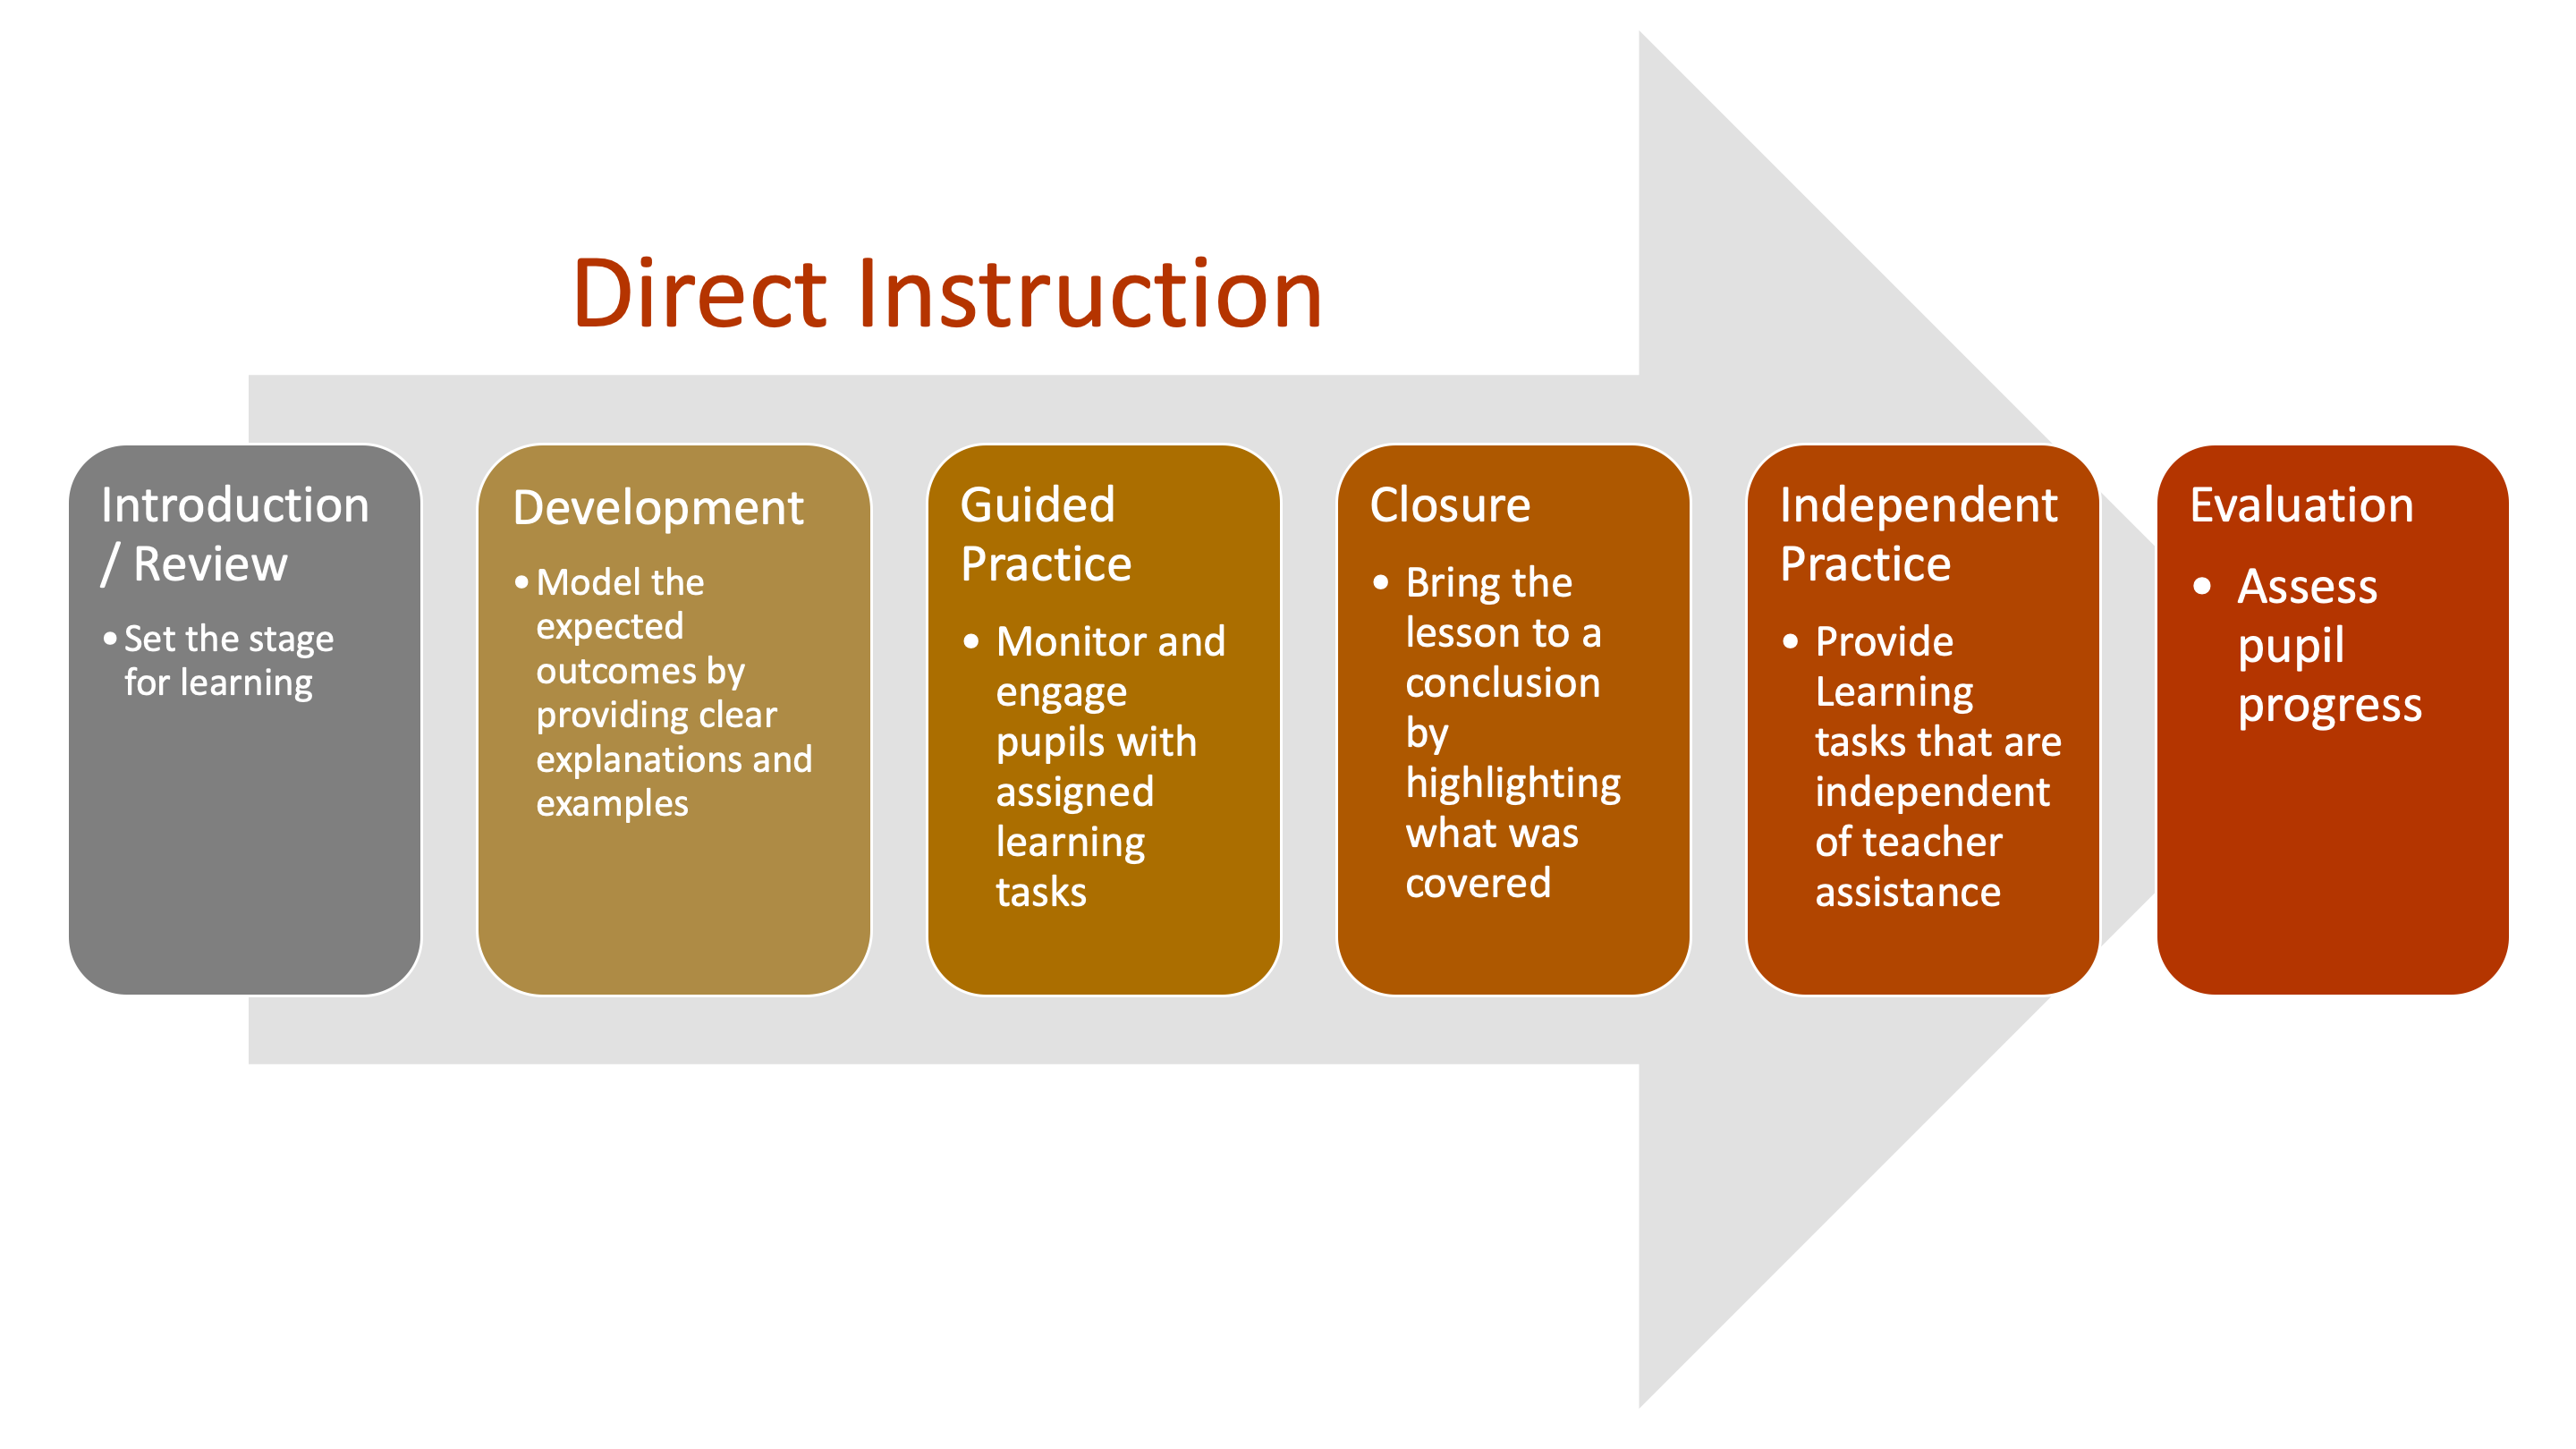 Introduction/ Review Set the stage for learning Development Model the expected outcomes by providing clear explanations and examples Guided Practice Monitor and engage pupils with assigned learning tasks Closure Bring the lesson to a conclusion by highlighting what was covered Independent Practice Provide Learning tasks that are independent of teacher assistance Evaluation Assess pupil progress